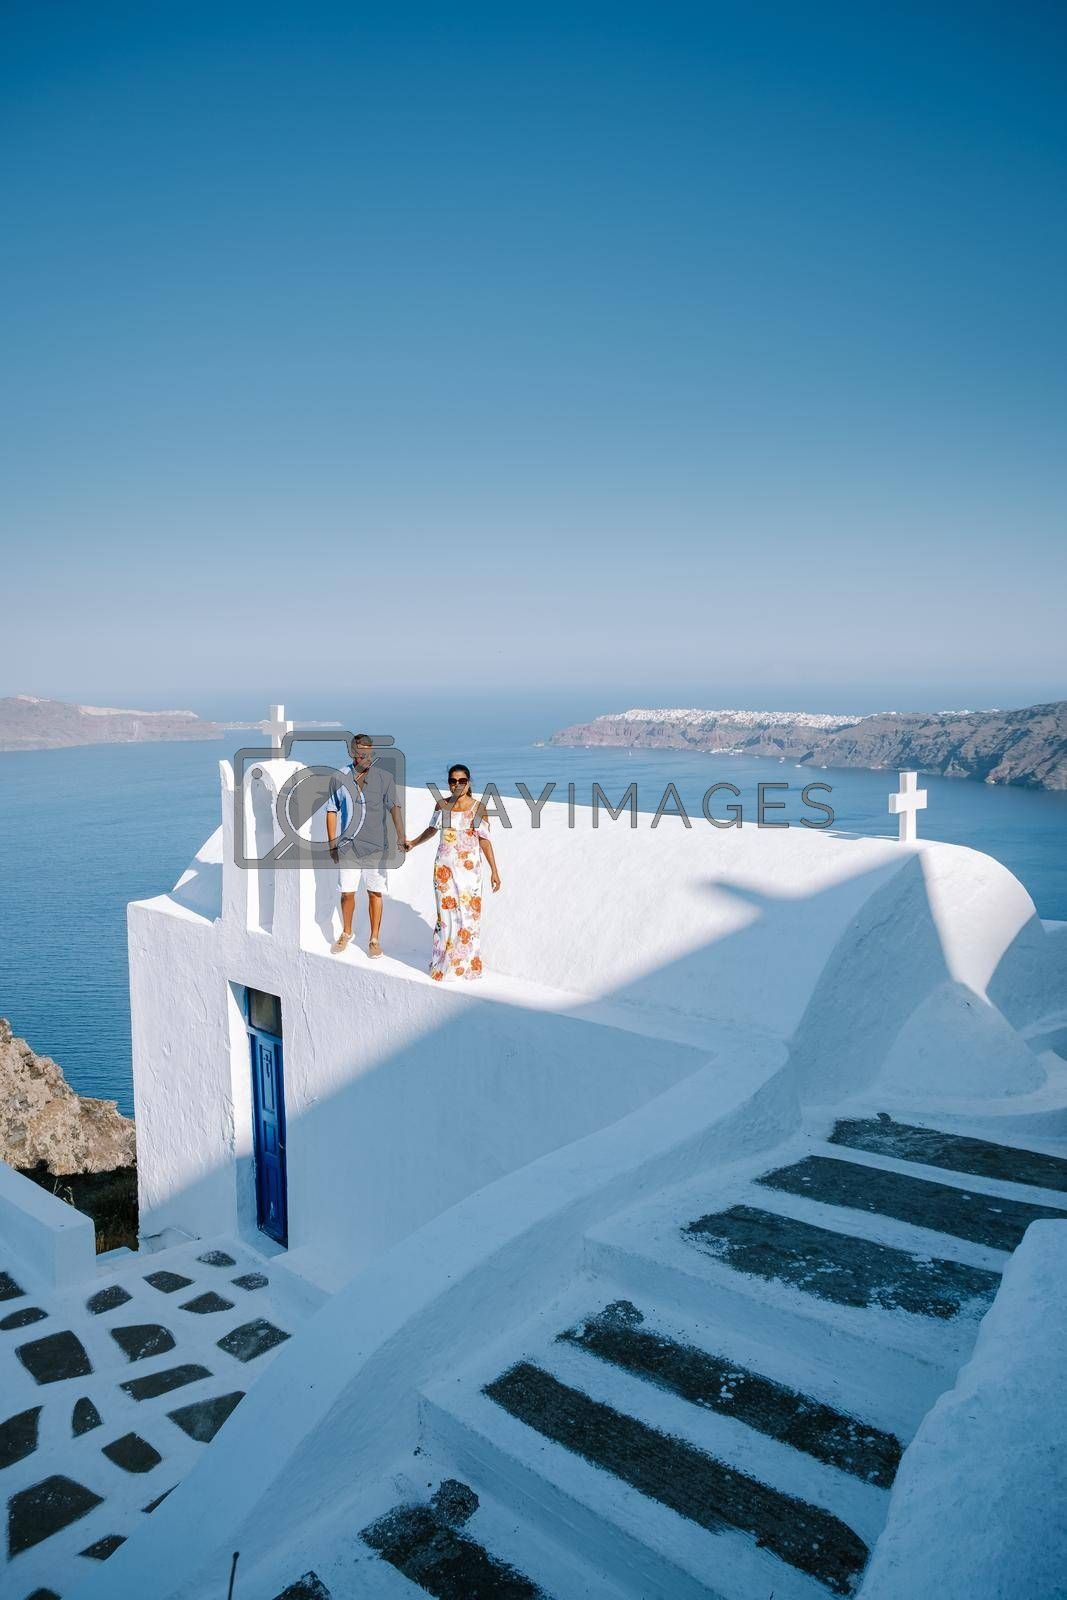 couple visit Skaros rock Fira,Santorini Greece, young couple on luxury vacation at the Island of Santorini watching sunrise by the blue dome church and whitewashed village of Oia Santorini Greece . Europe